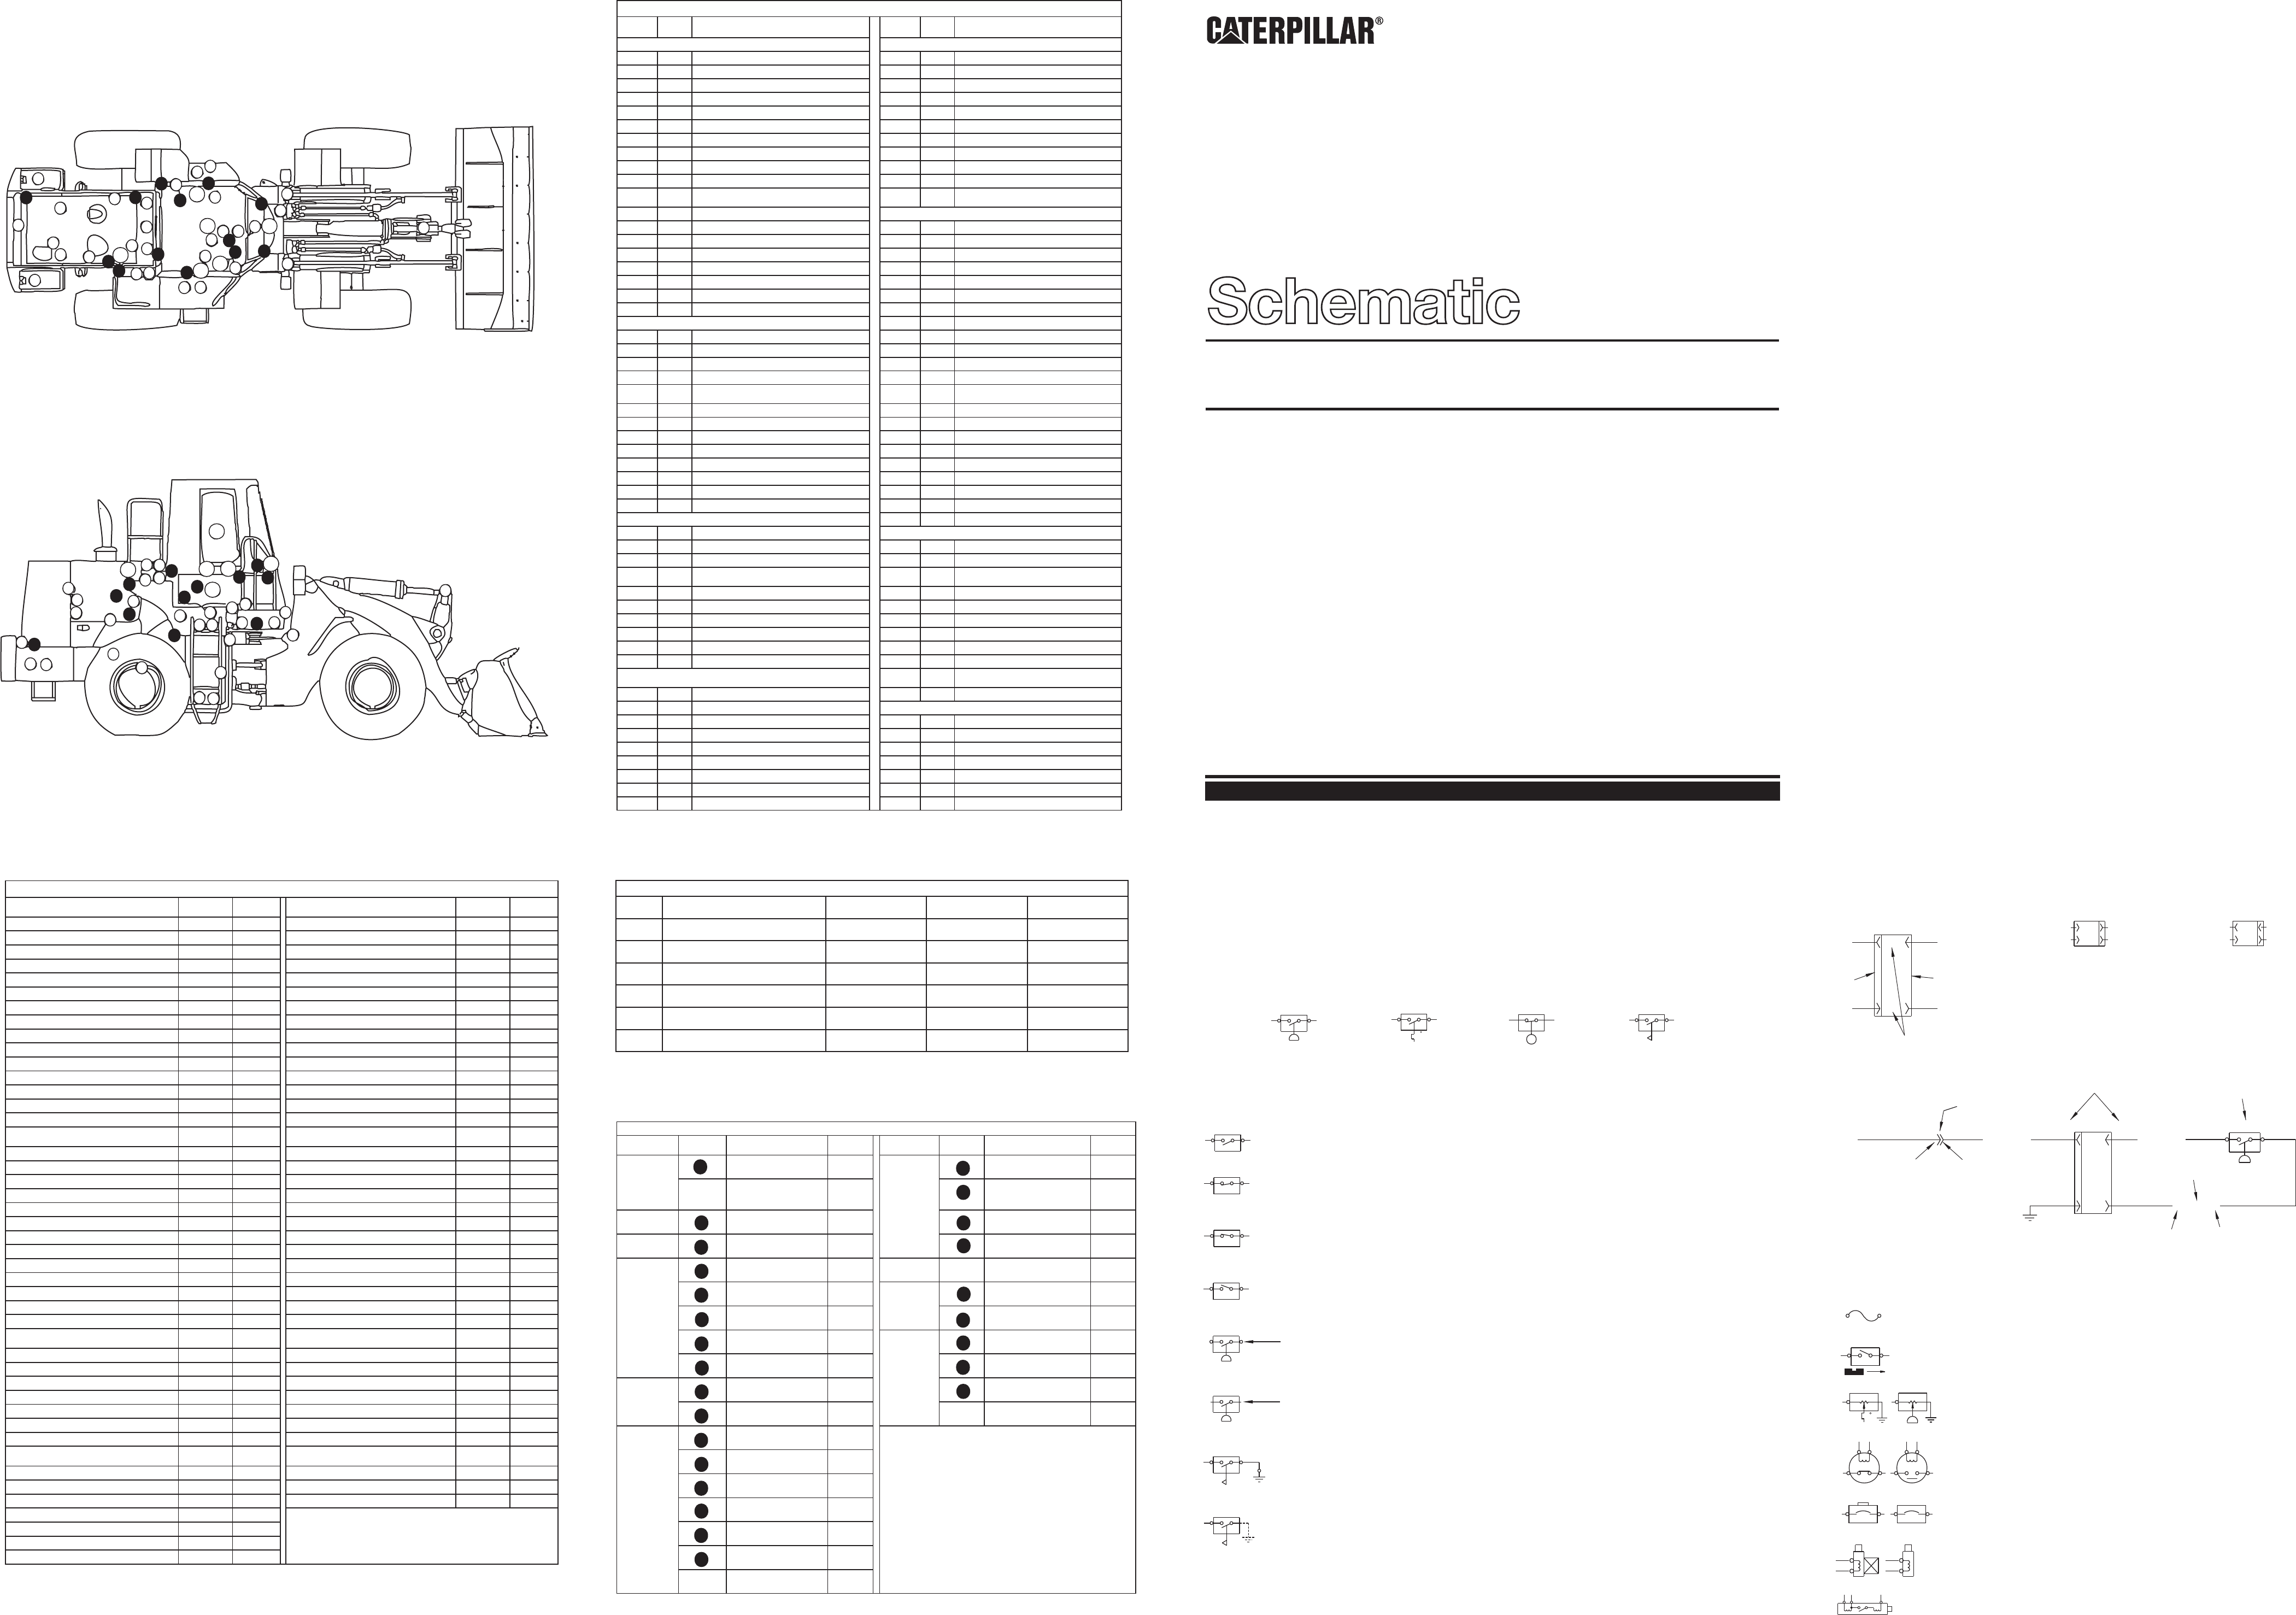 950f electrical systems schematic cat machines electrical  caterpillar 950f series ii & 960f wheel